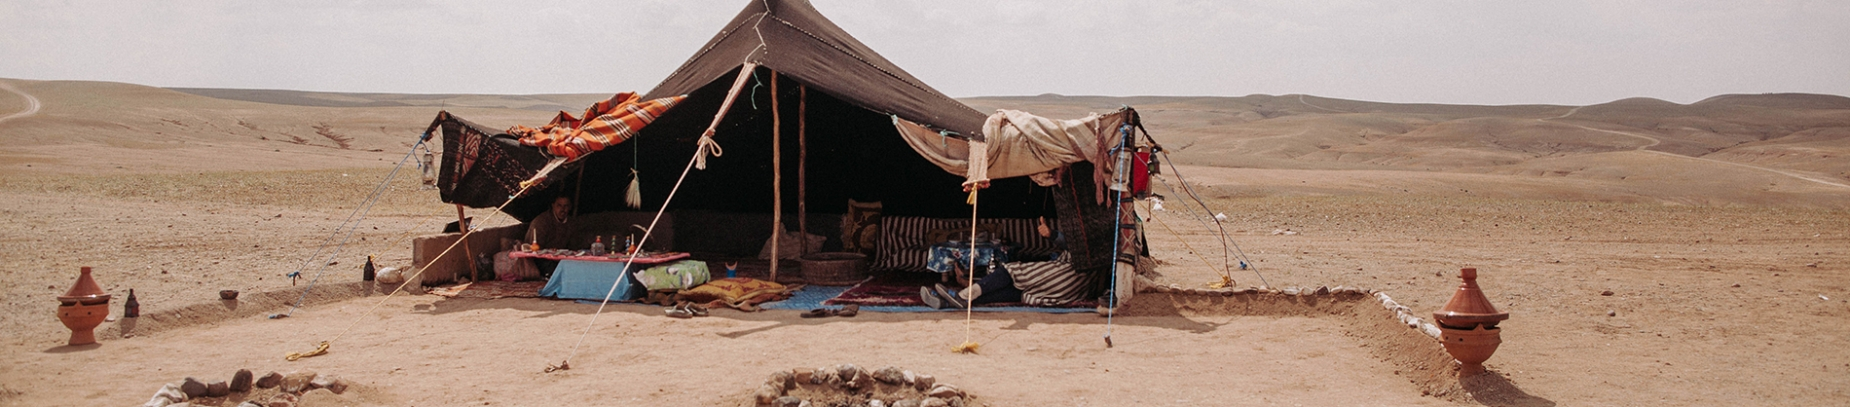 A old tent held up with ropes in the middle of a desert